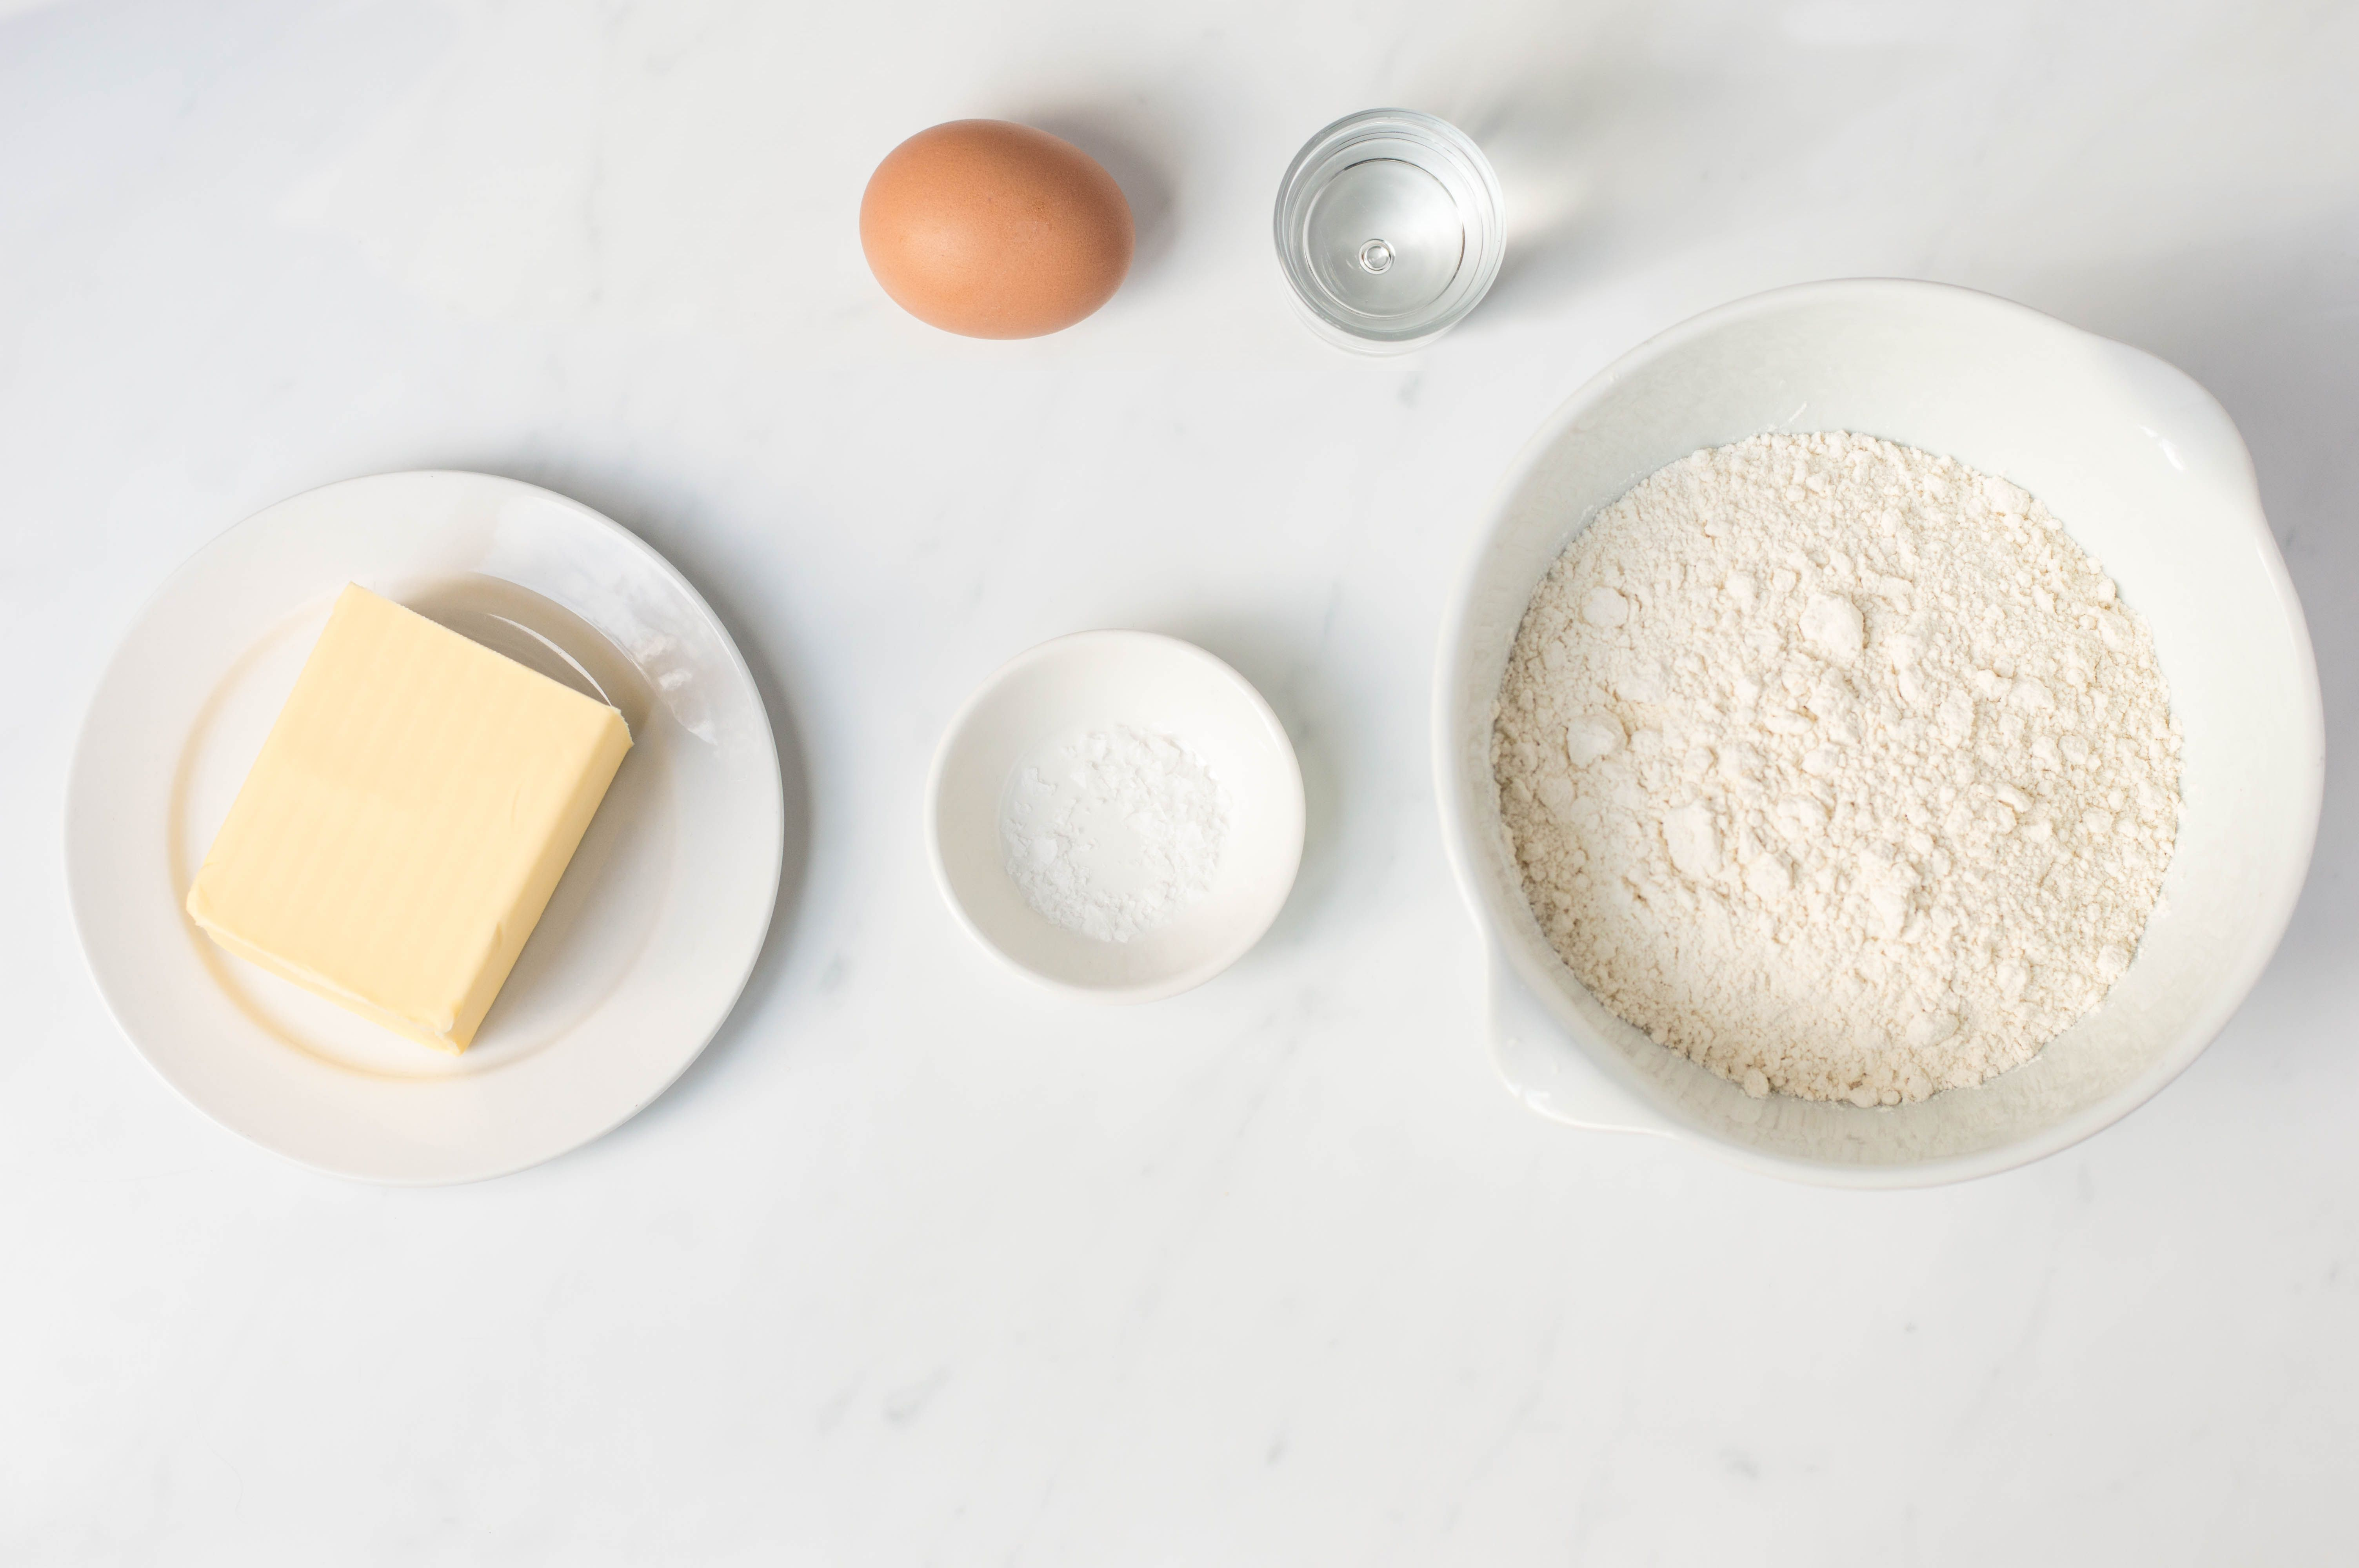 Mince pie pastry ingredients